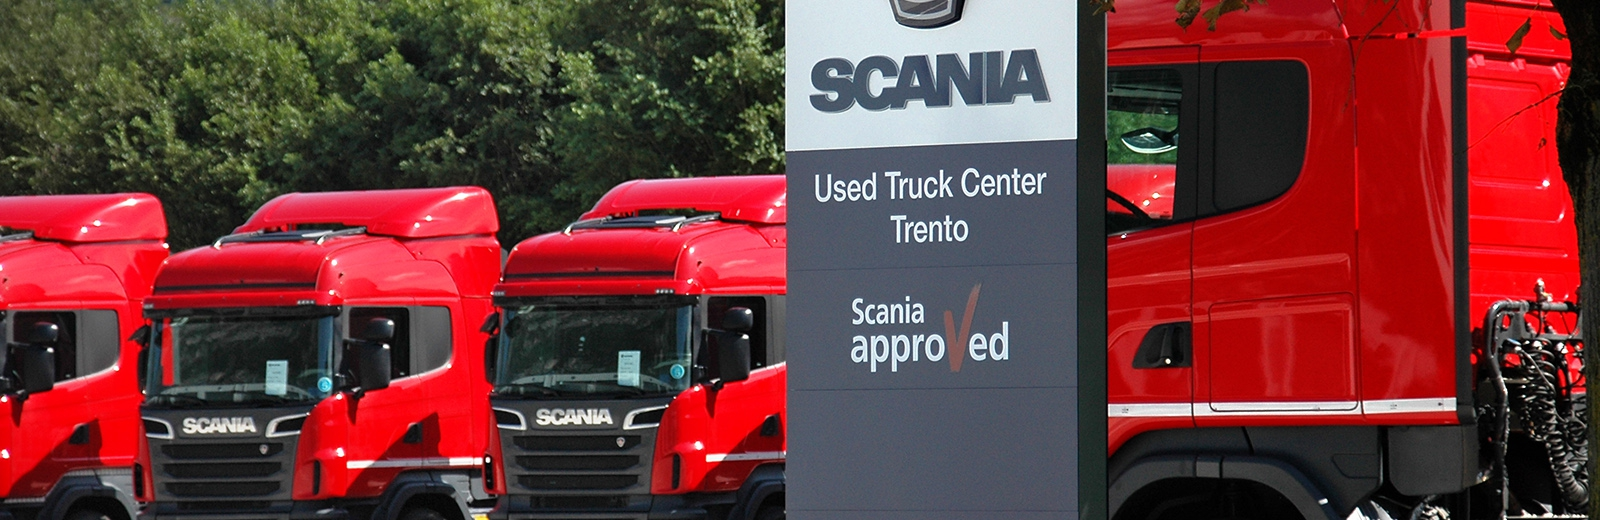 Scania approved